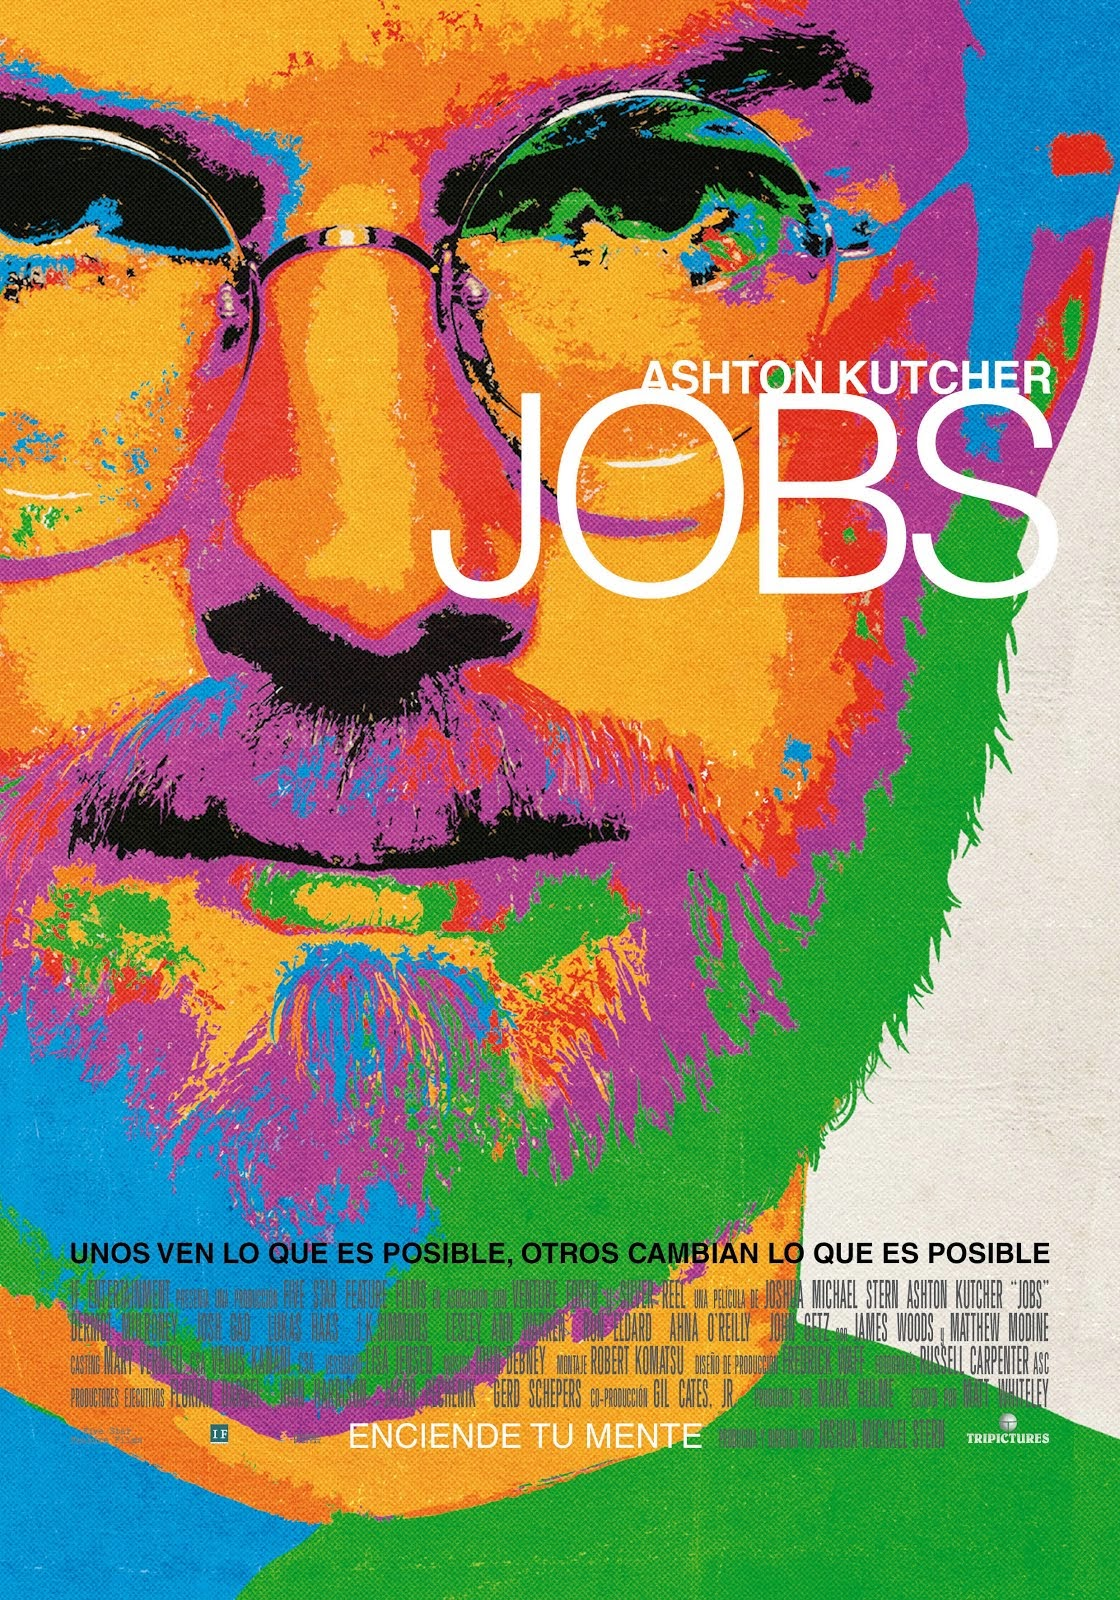 JOBS en el fancine